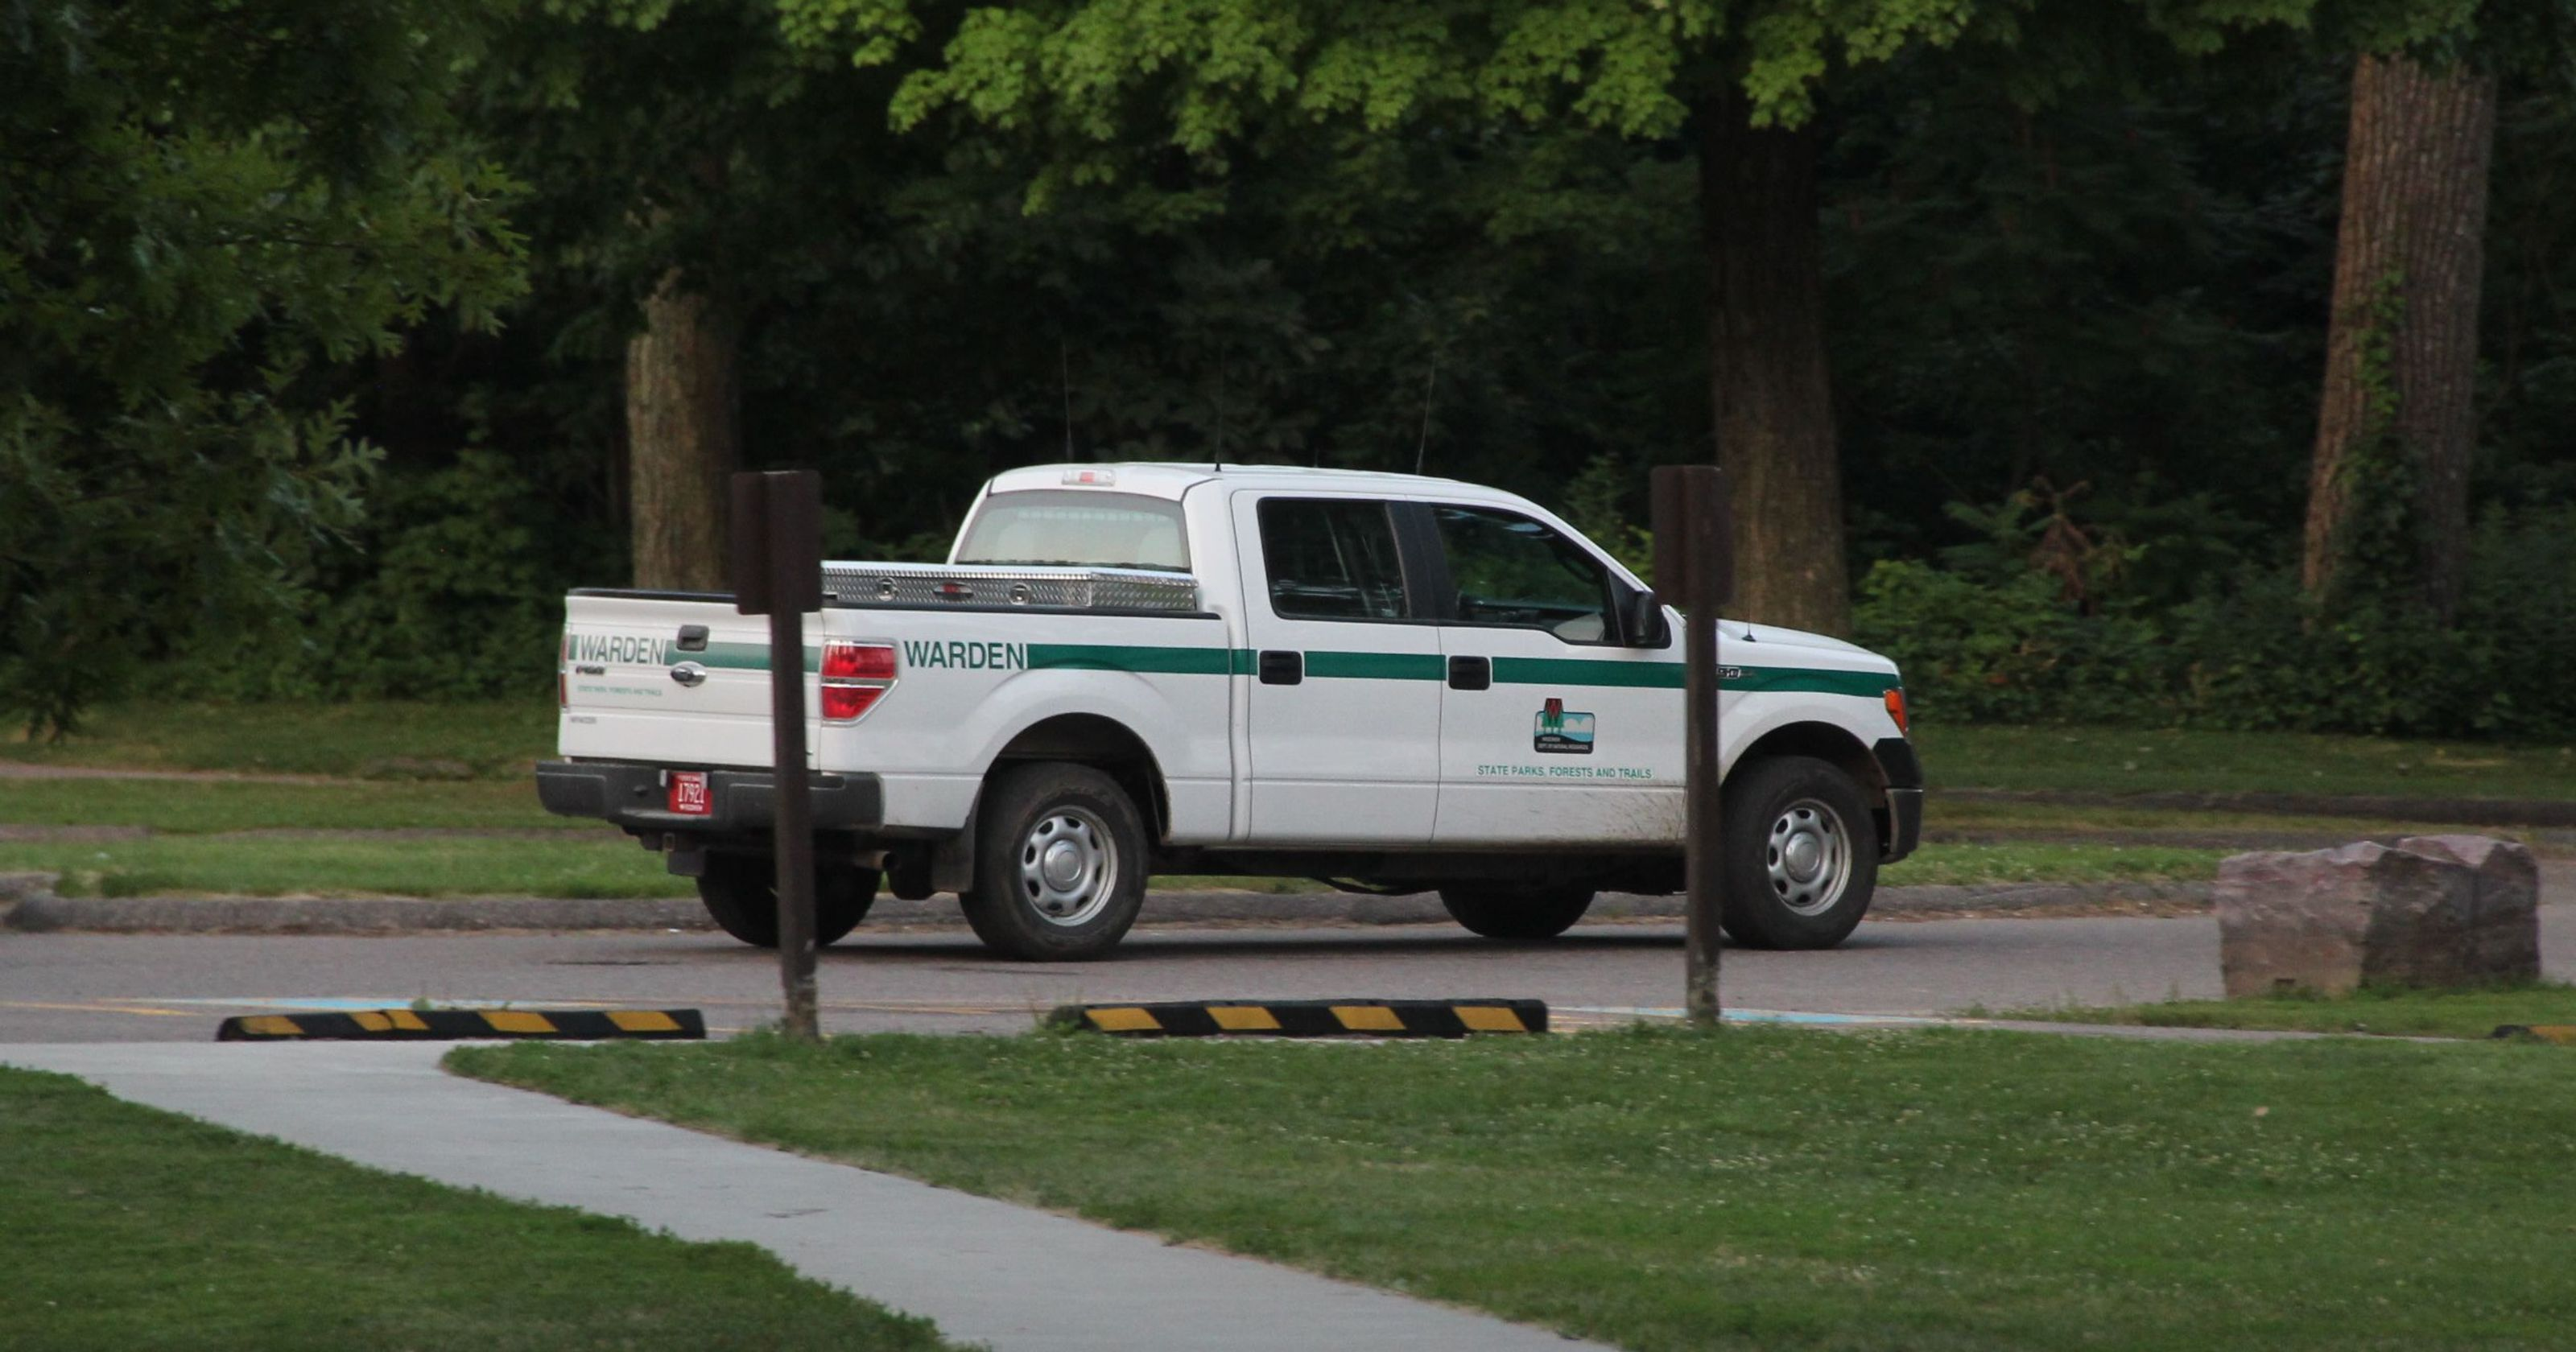 Wisconsin warden shortage and changes in responsibilities